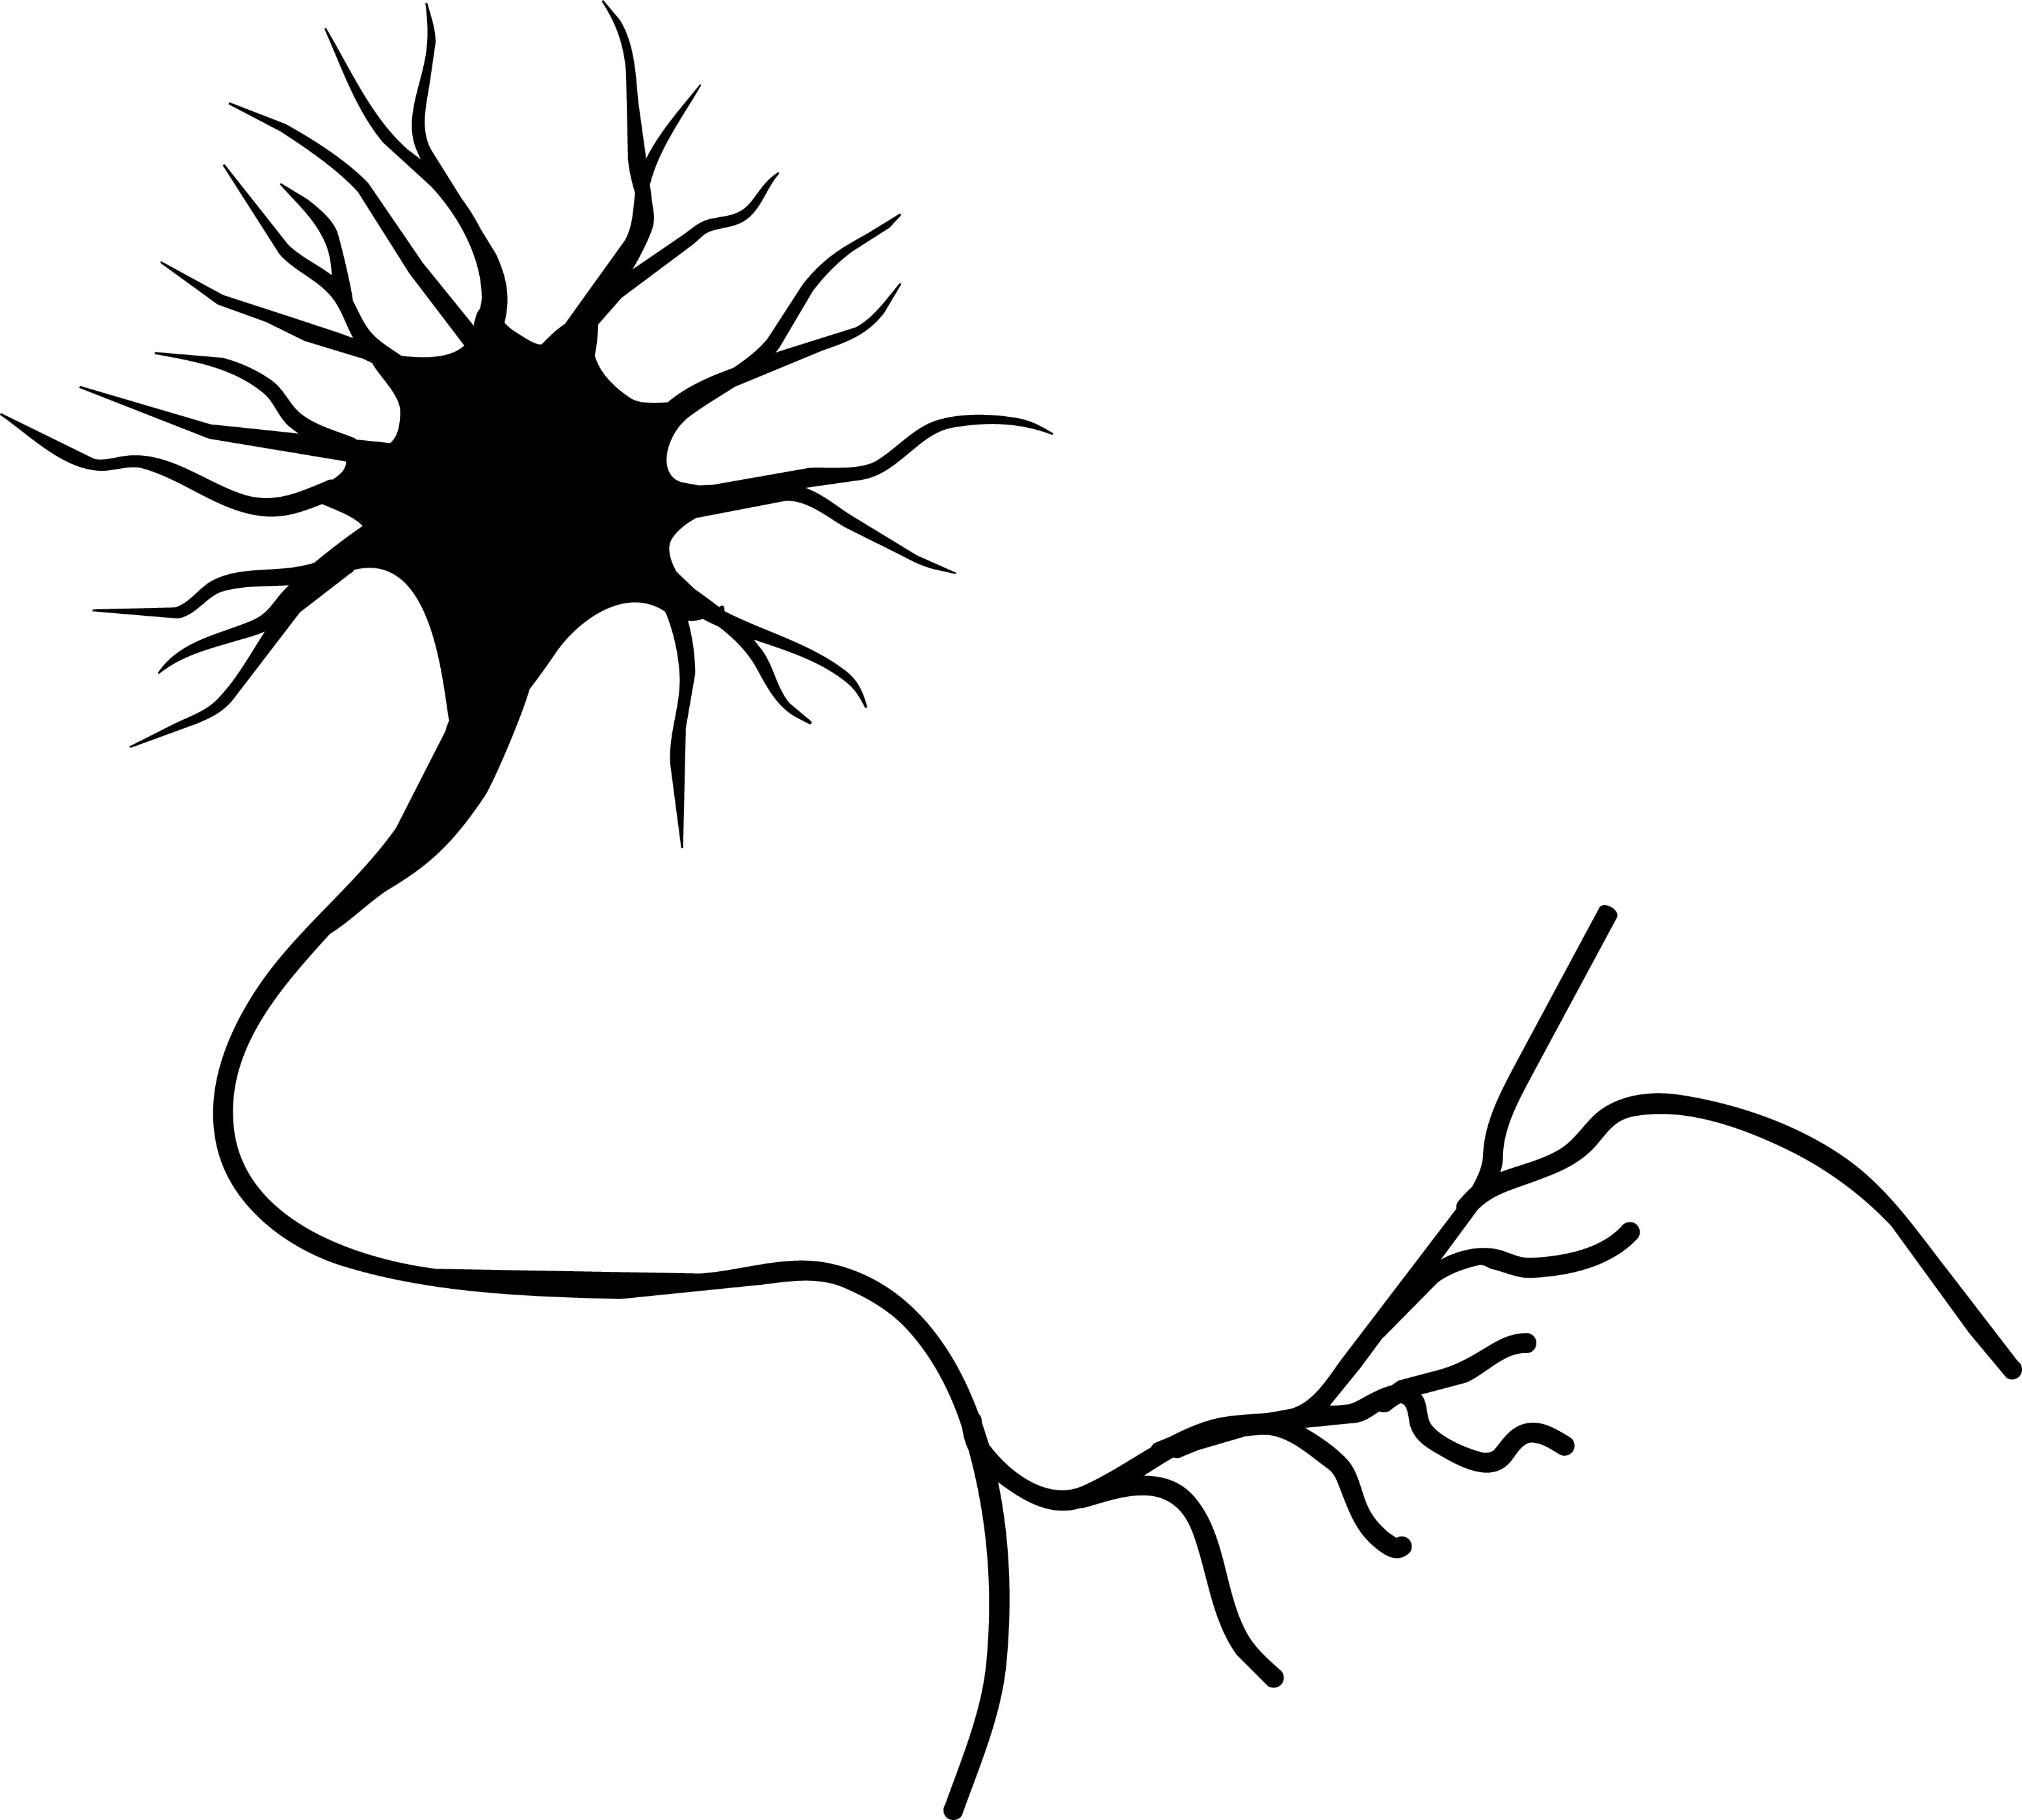 Free Neuron Cliparts Download Free Clip Art Free Clip Art On Clipart Library